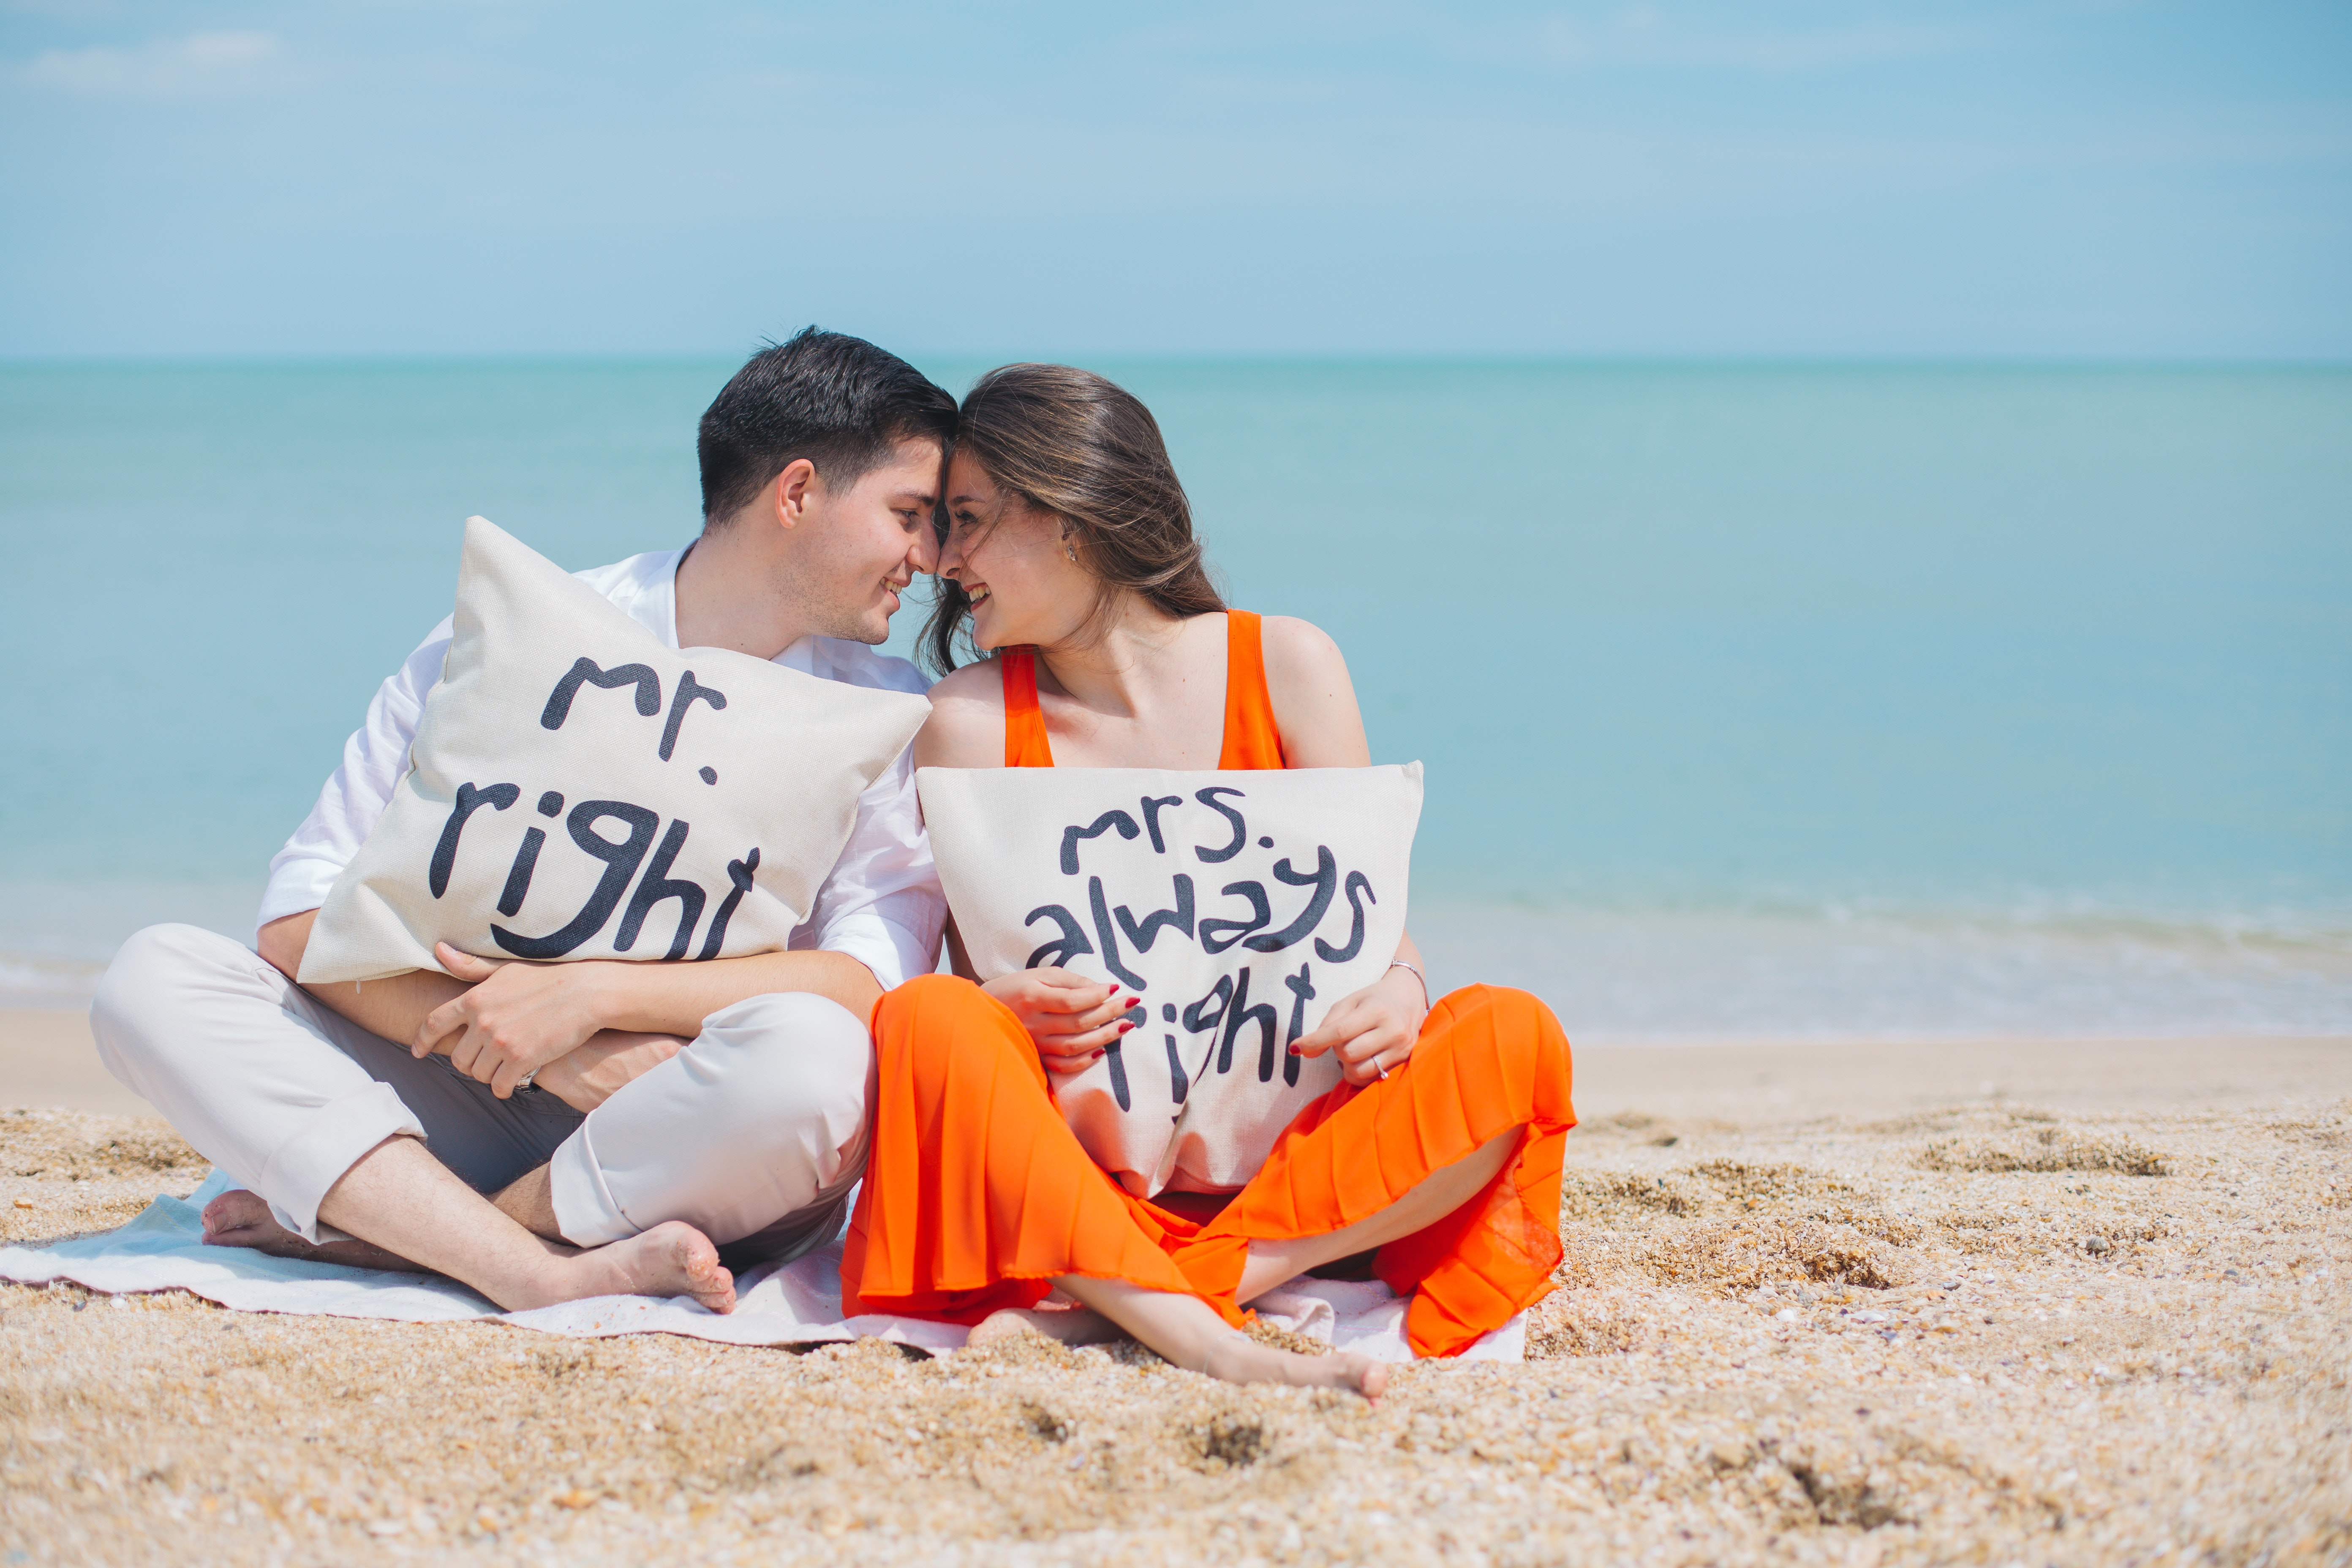 man-and-woman-wearing-cloths-sitting-on-brown-sand-near-792729